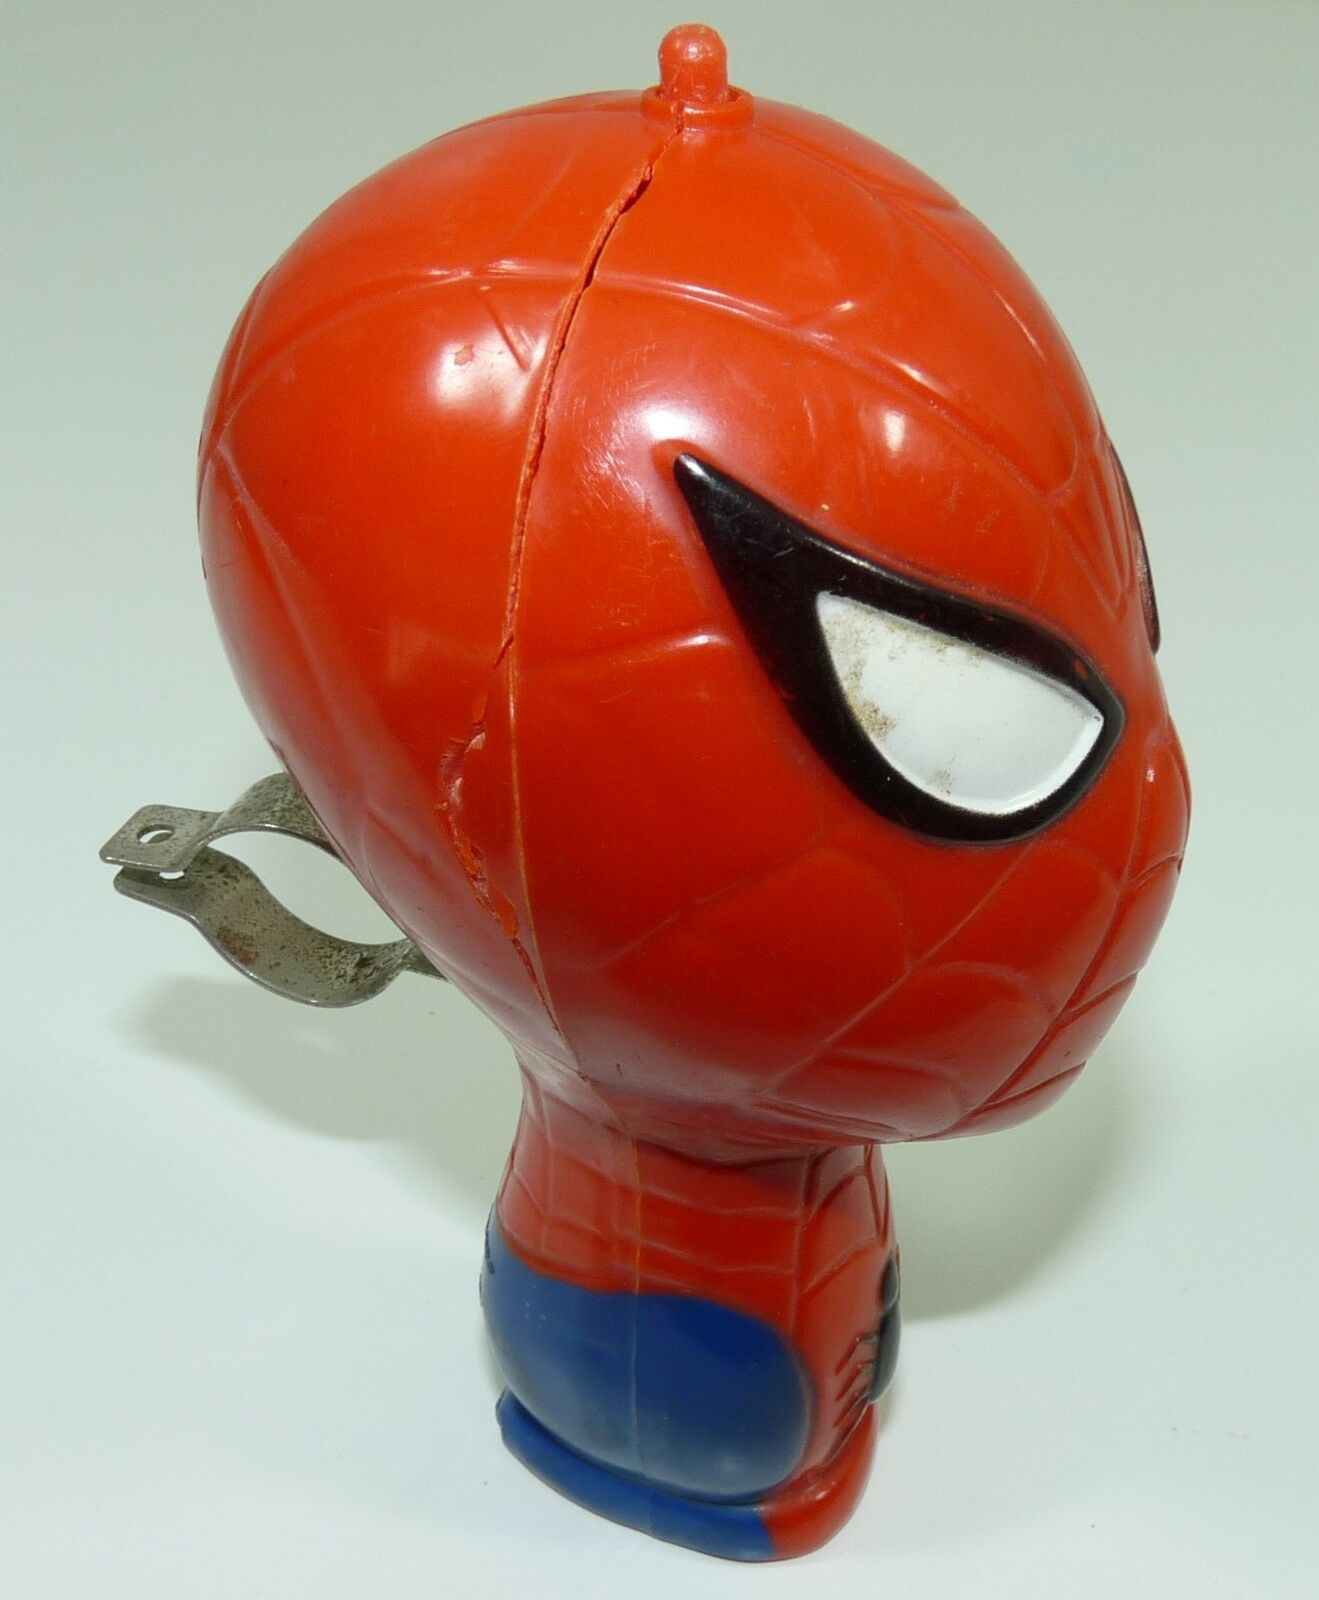 VINTAGE 1973 MARVEL COMICS SPIDERMAN BICYCLE BICYCLE BICYCLE HORN - DURHAM INDUSTRIES - RARE  6e64a5